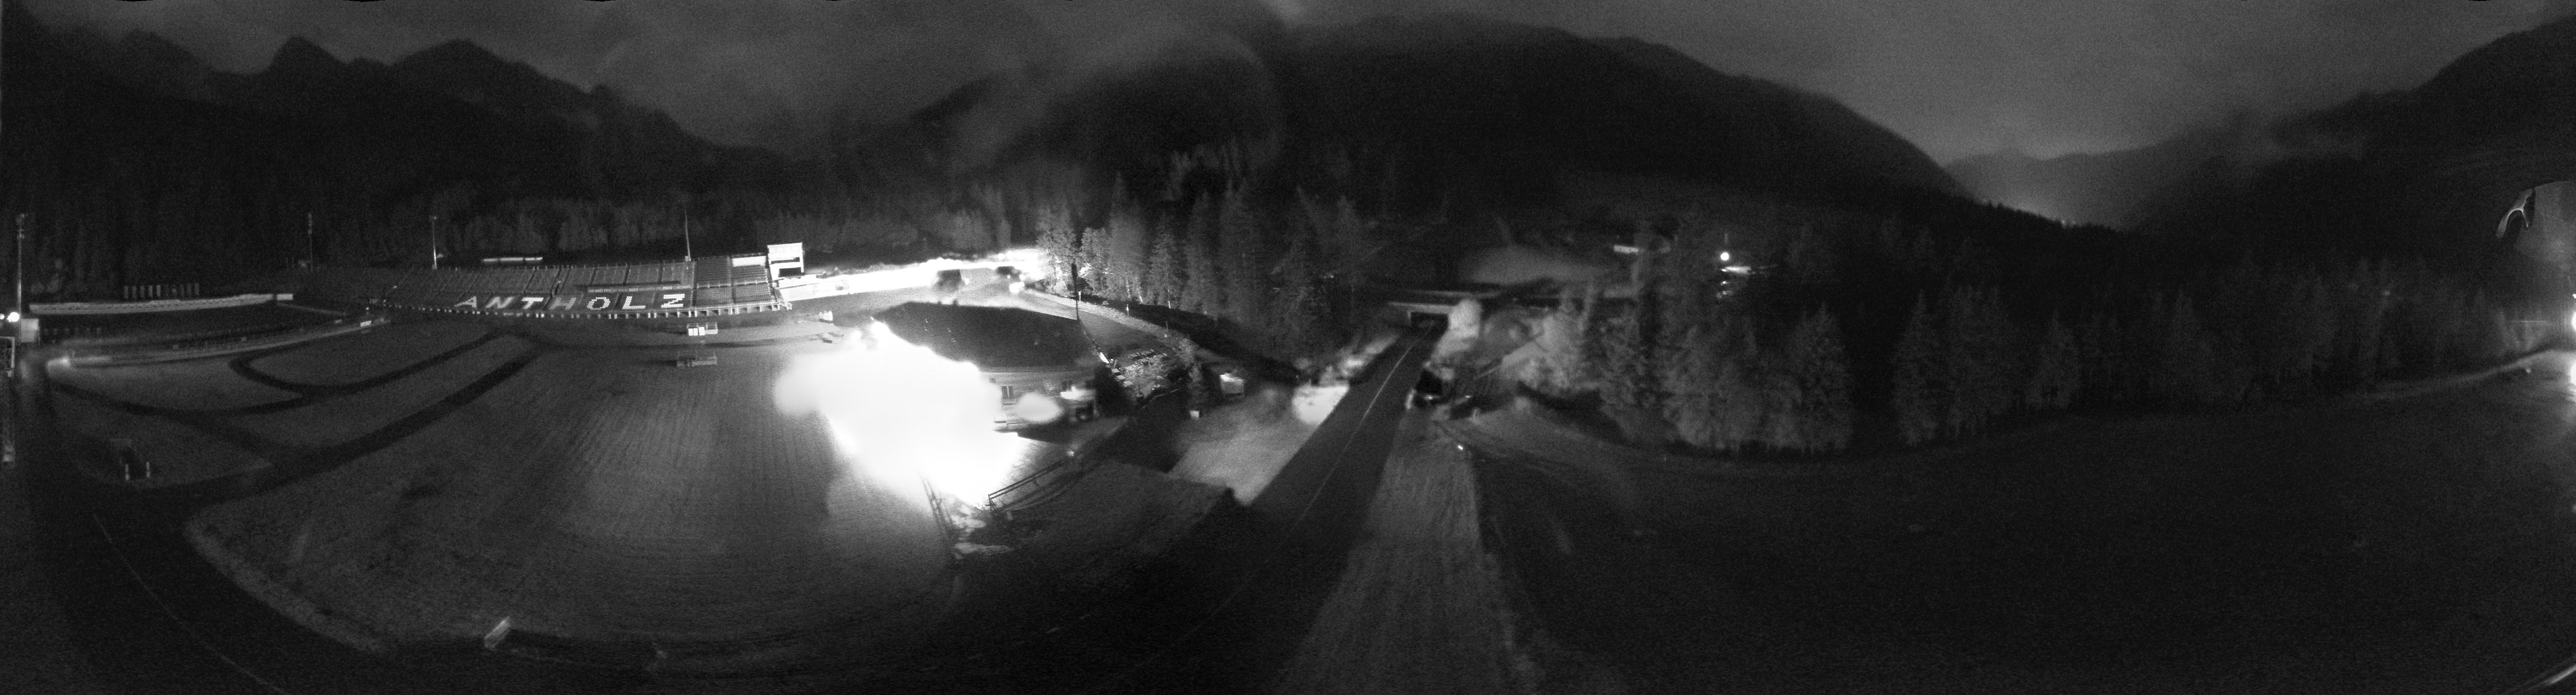 Webcam of the Biathlon centre in Anterselva